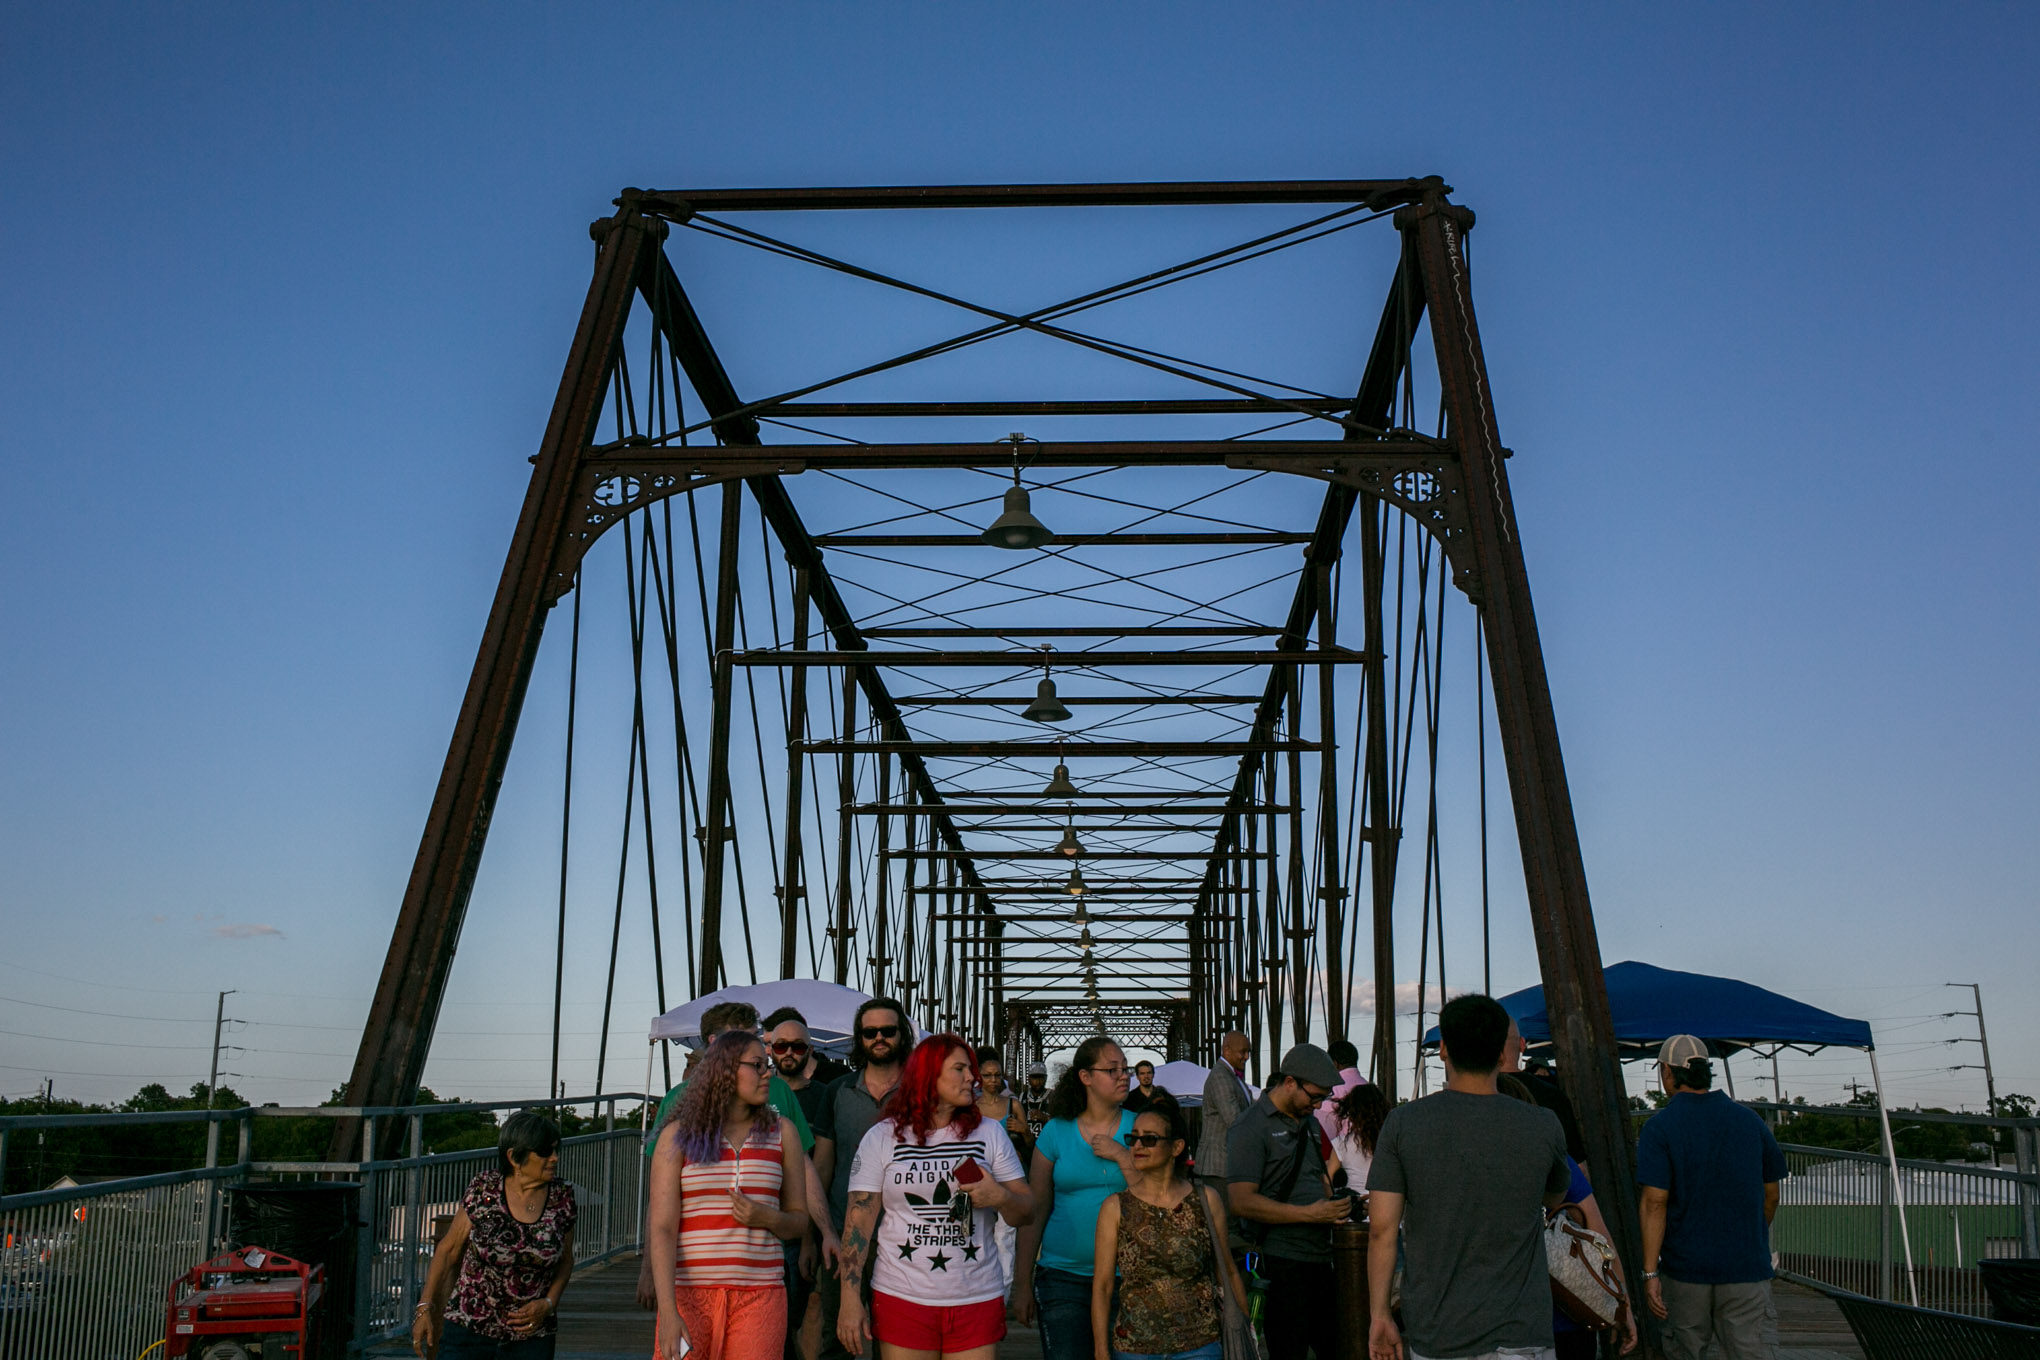 Hundreds of people walk up and down the Hays Street Bridge during SA Good People Soul Saturday. Photo by Kathryn Boyd-Batstone.